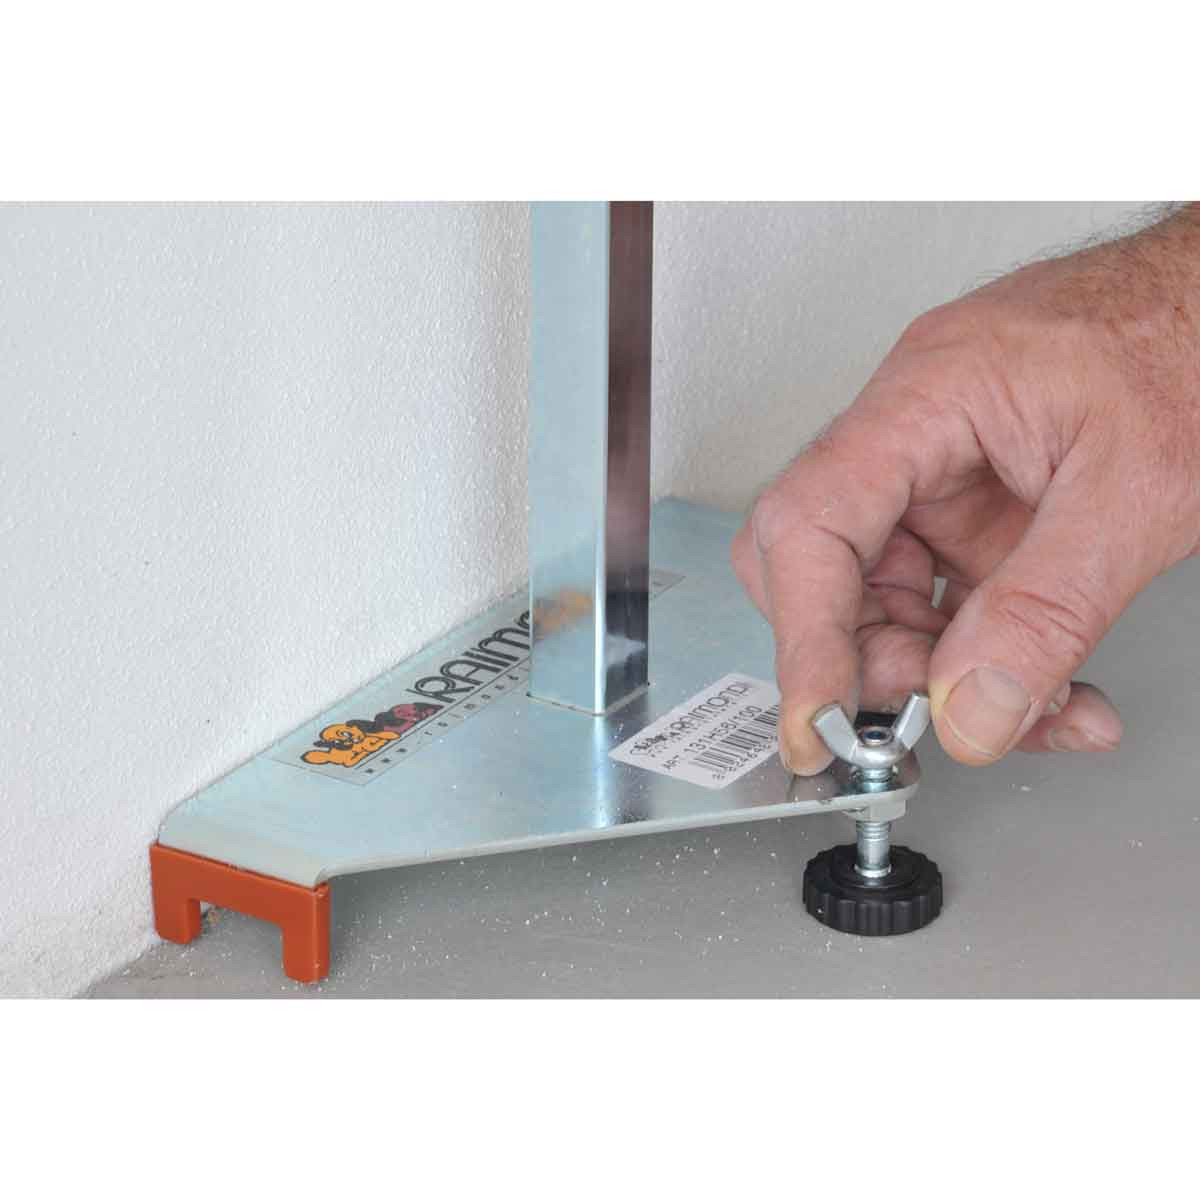 Raimondi tile leveling guide